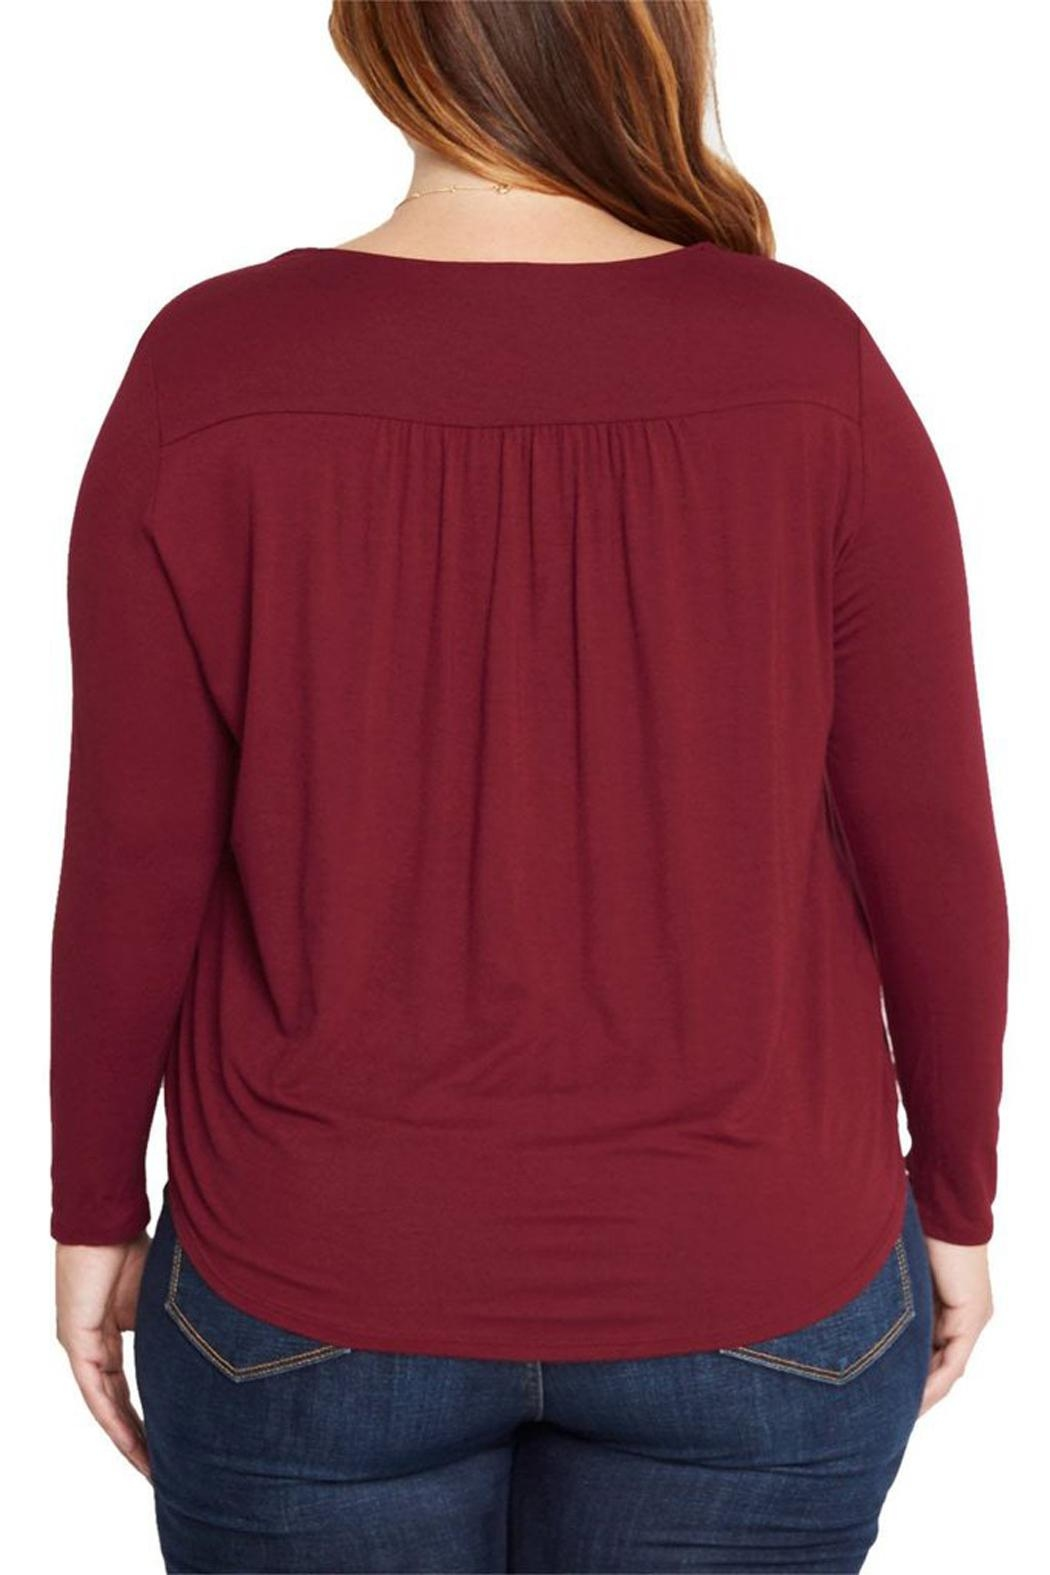 Mai Tai Burgundy Lace Up Top - Side Cropped Image